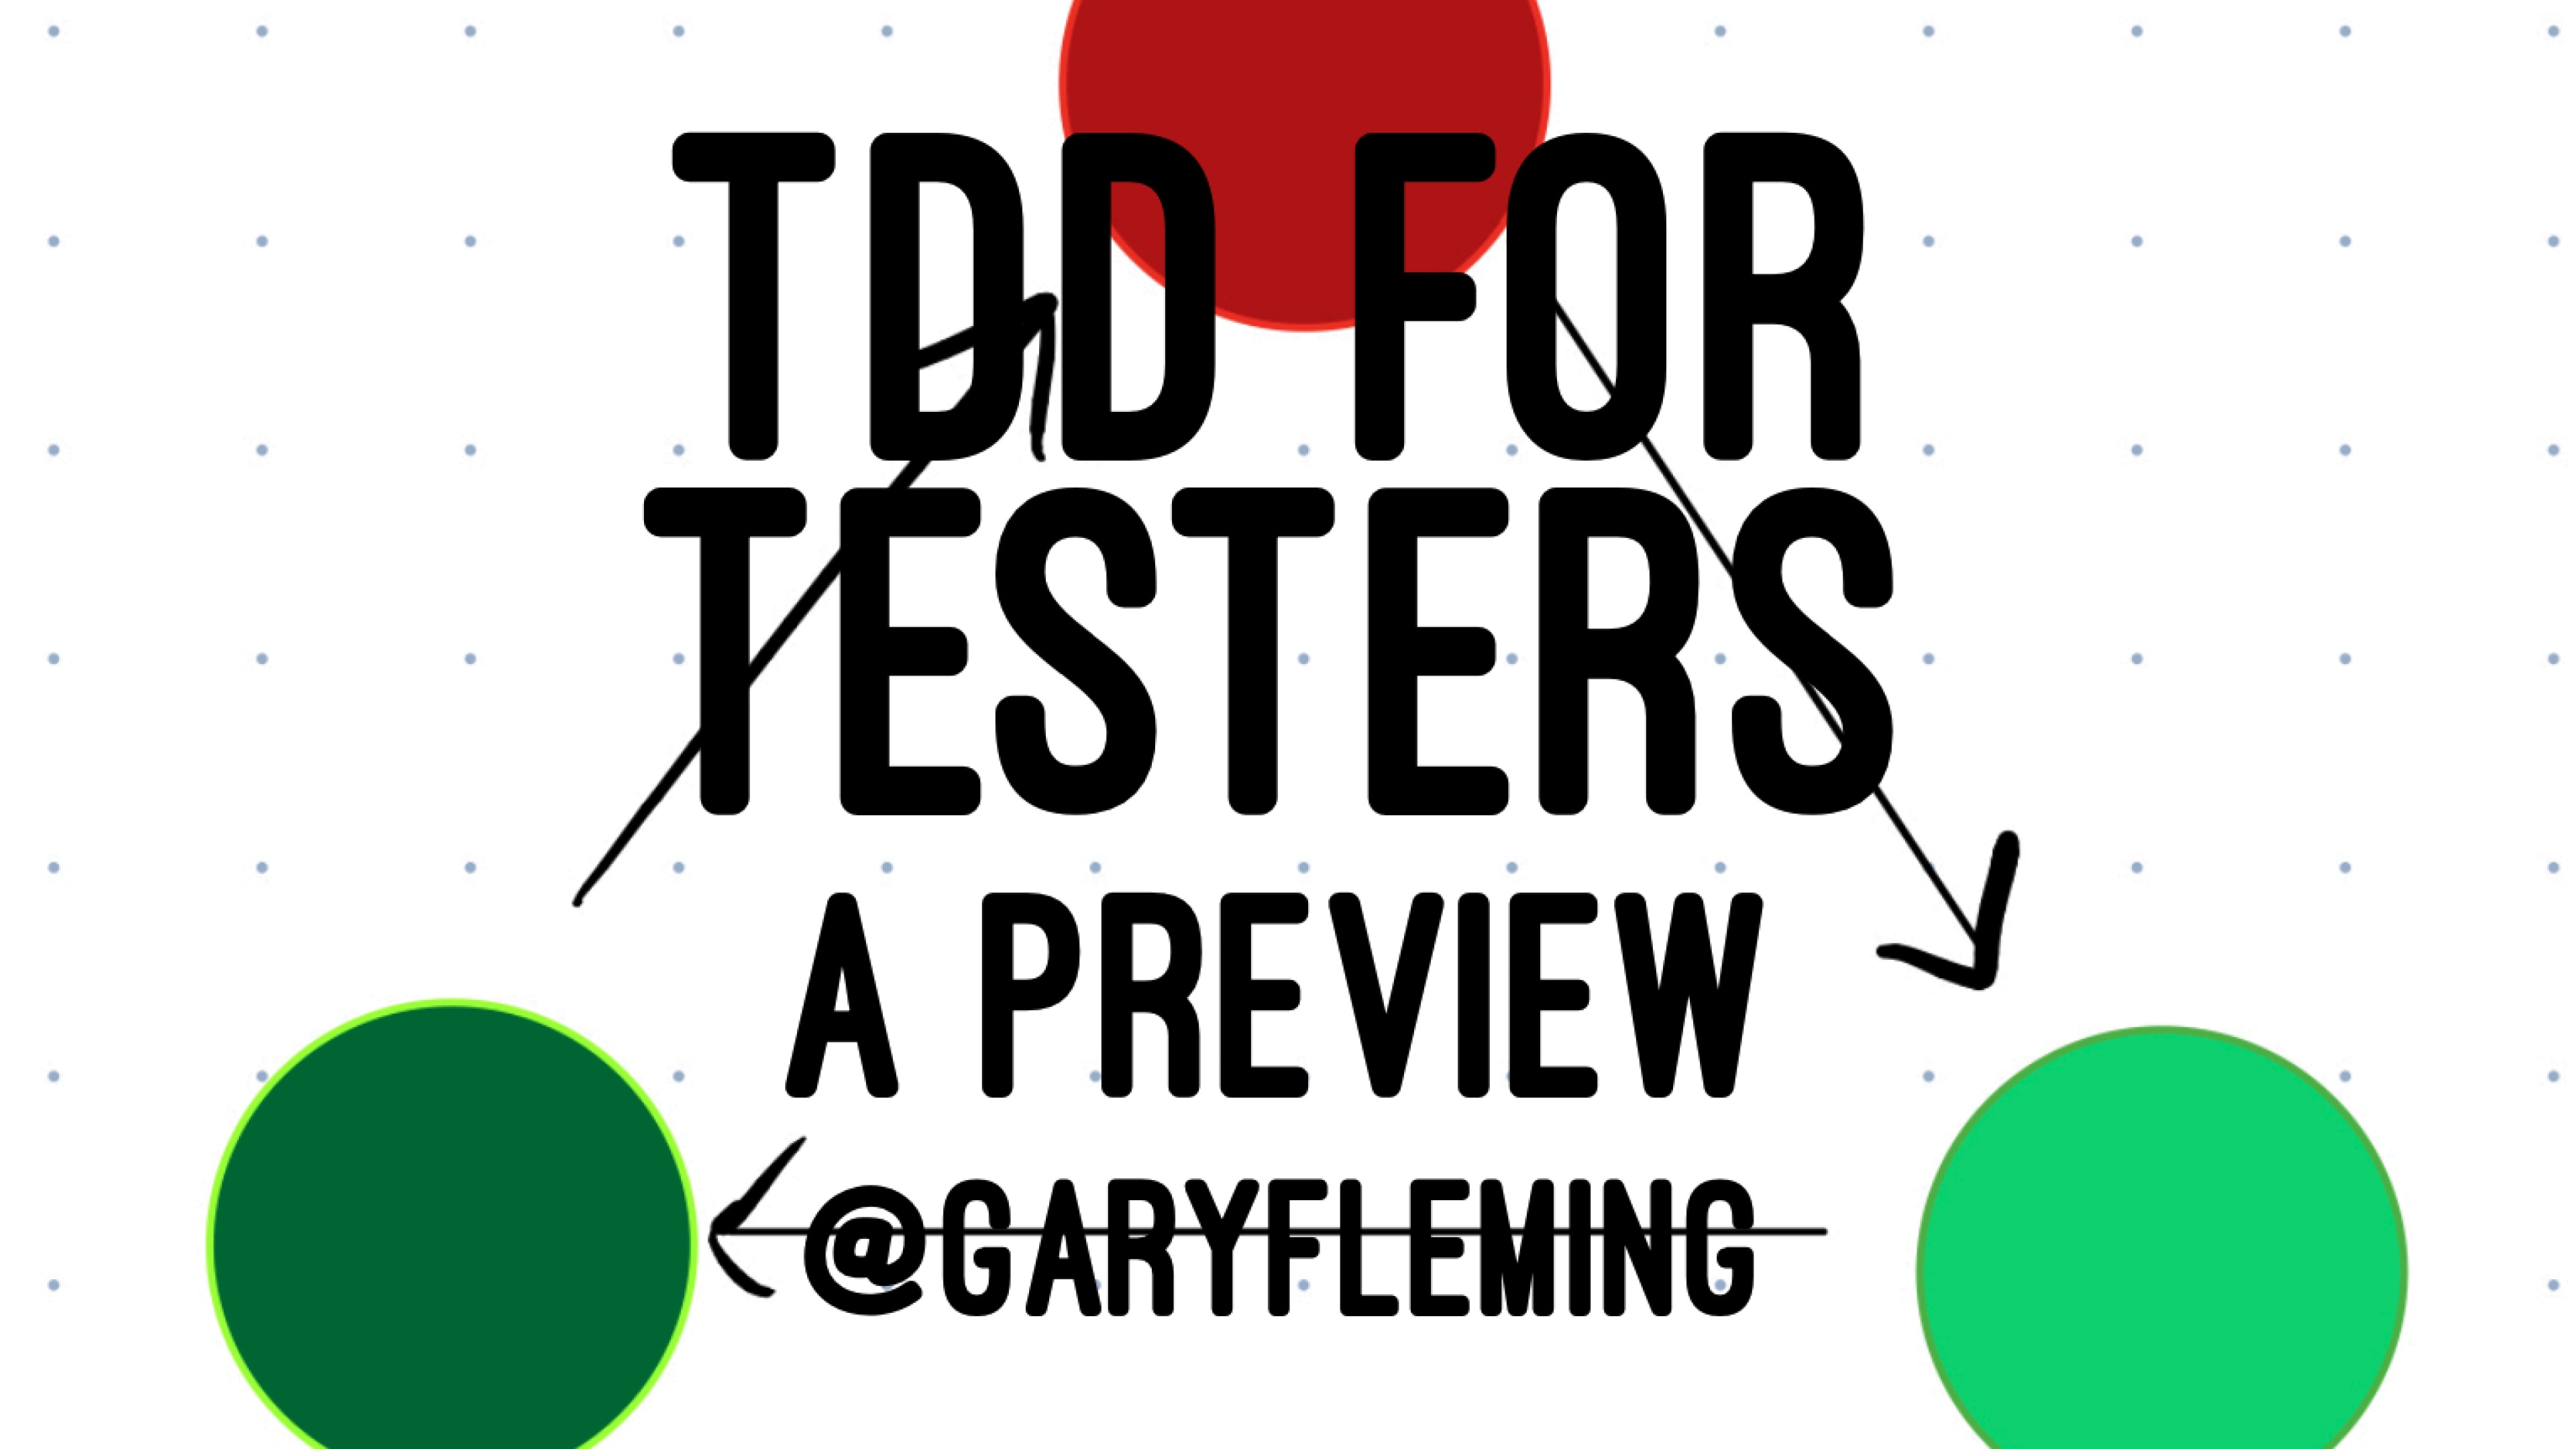 TDD for Testers with Gary Fleming